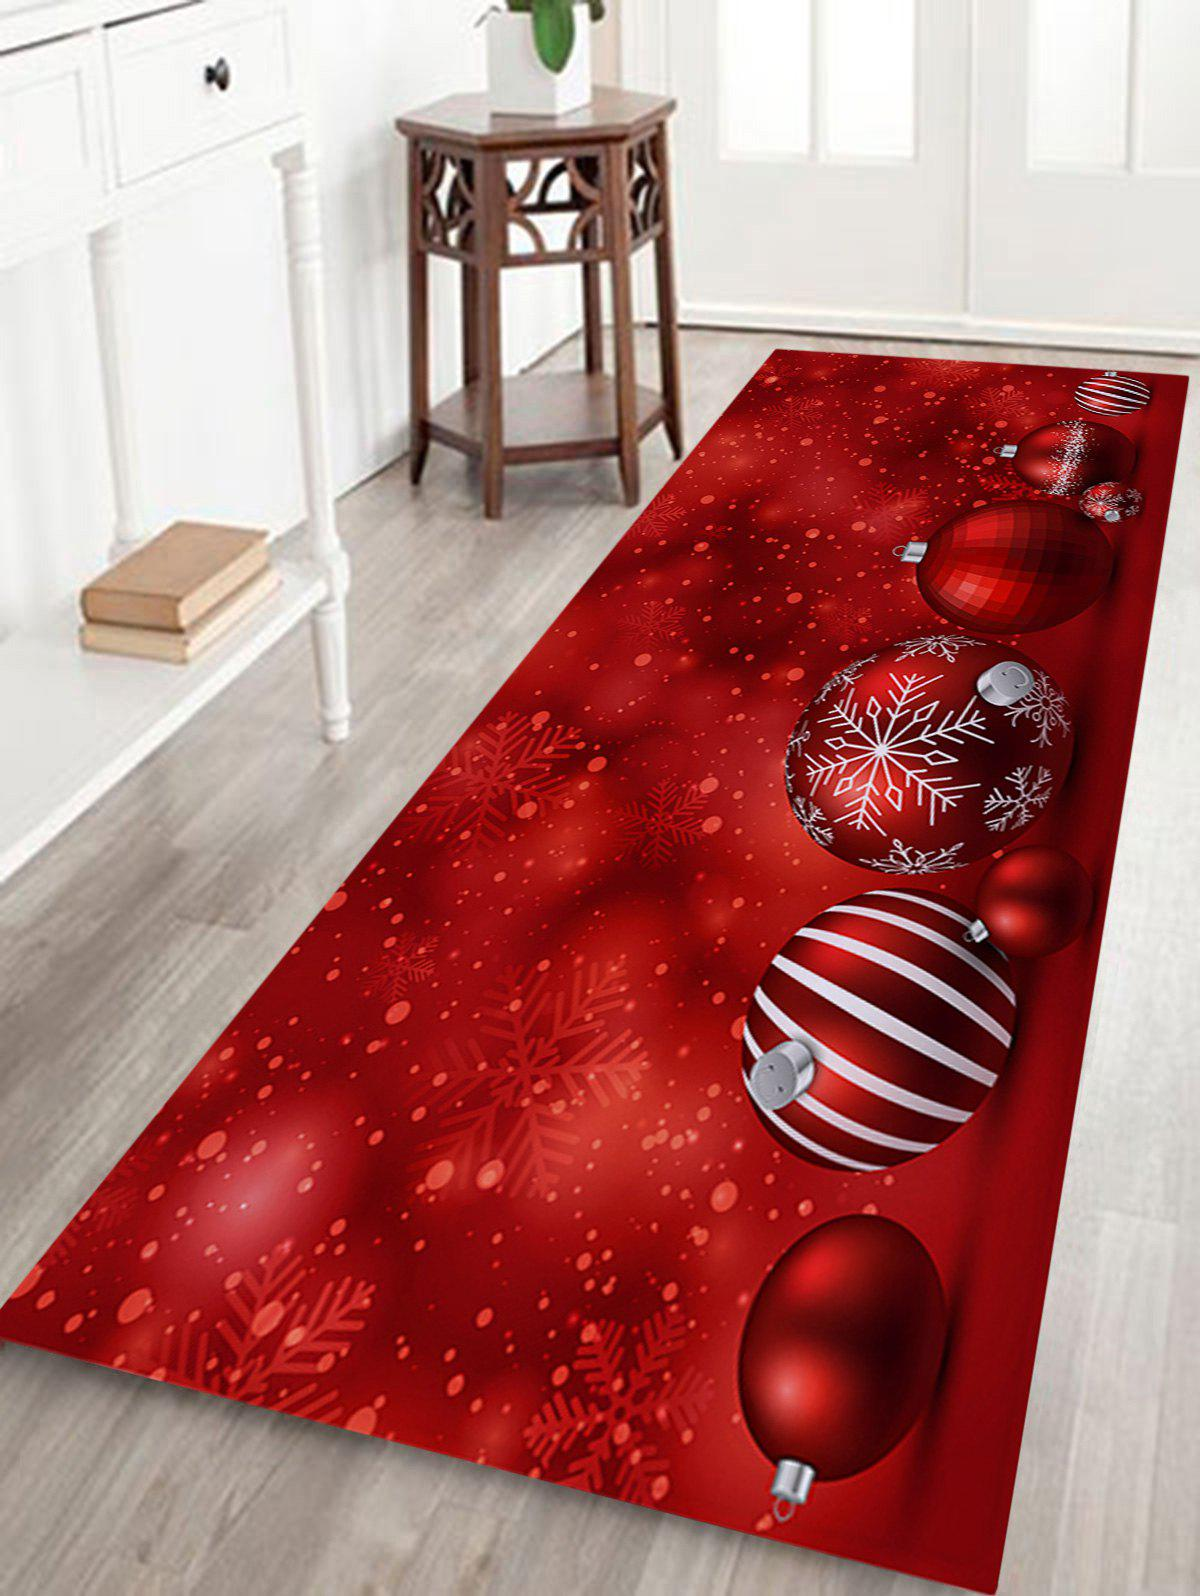 Christmas Balls Pattern Skidproof Coral Fleece Bath RugHOME<br><br>Size: W16 INCH * L47 INCH; Color: RED; Products Type: Bath rugs; Materials: Coral FLeece; Pattern: Ball; Style: Festival; Shape: Rectangular; Package Contents: 1 x Rug;